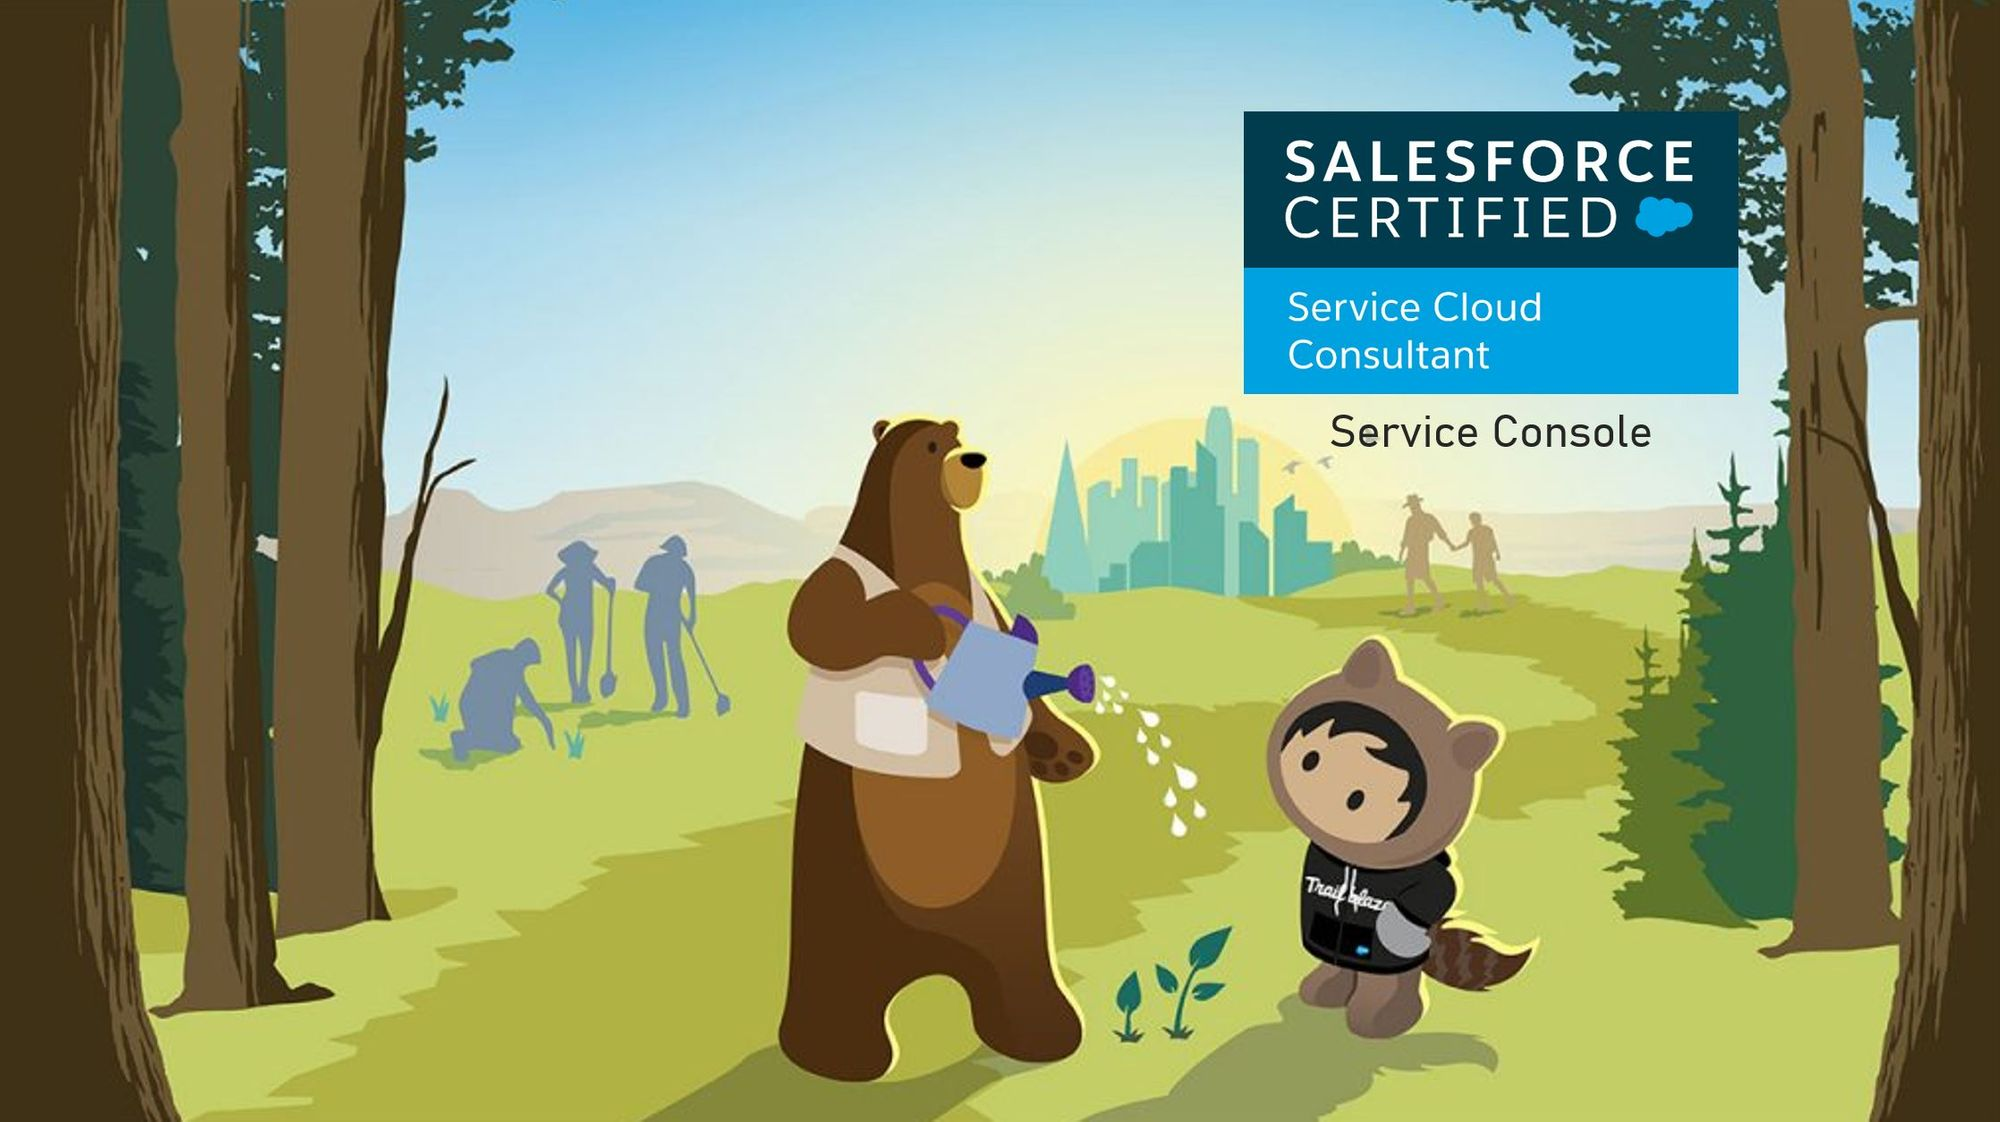 Salesforce Service Cloud Consultant Exam Preparation: Service Console